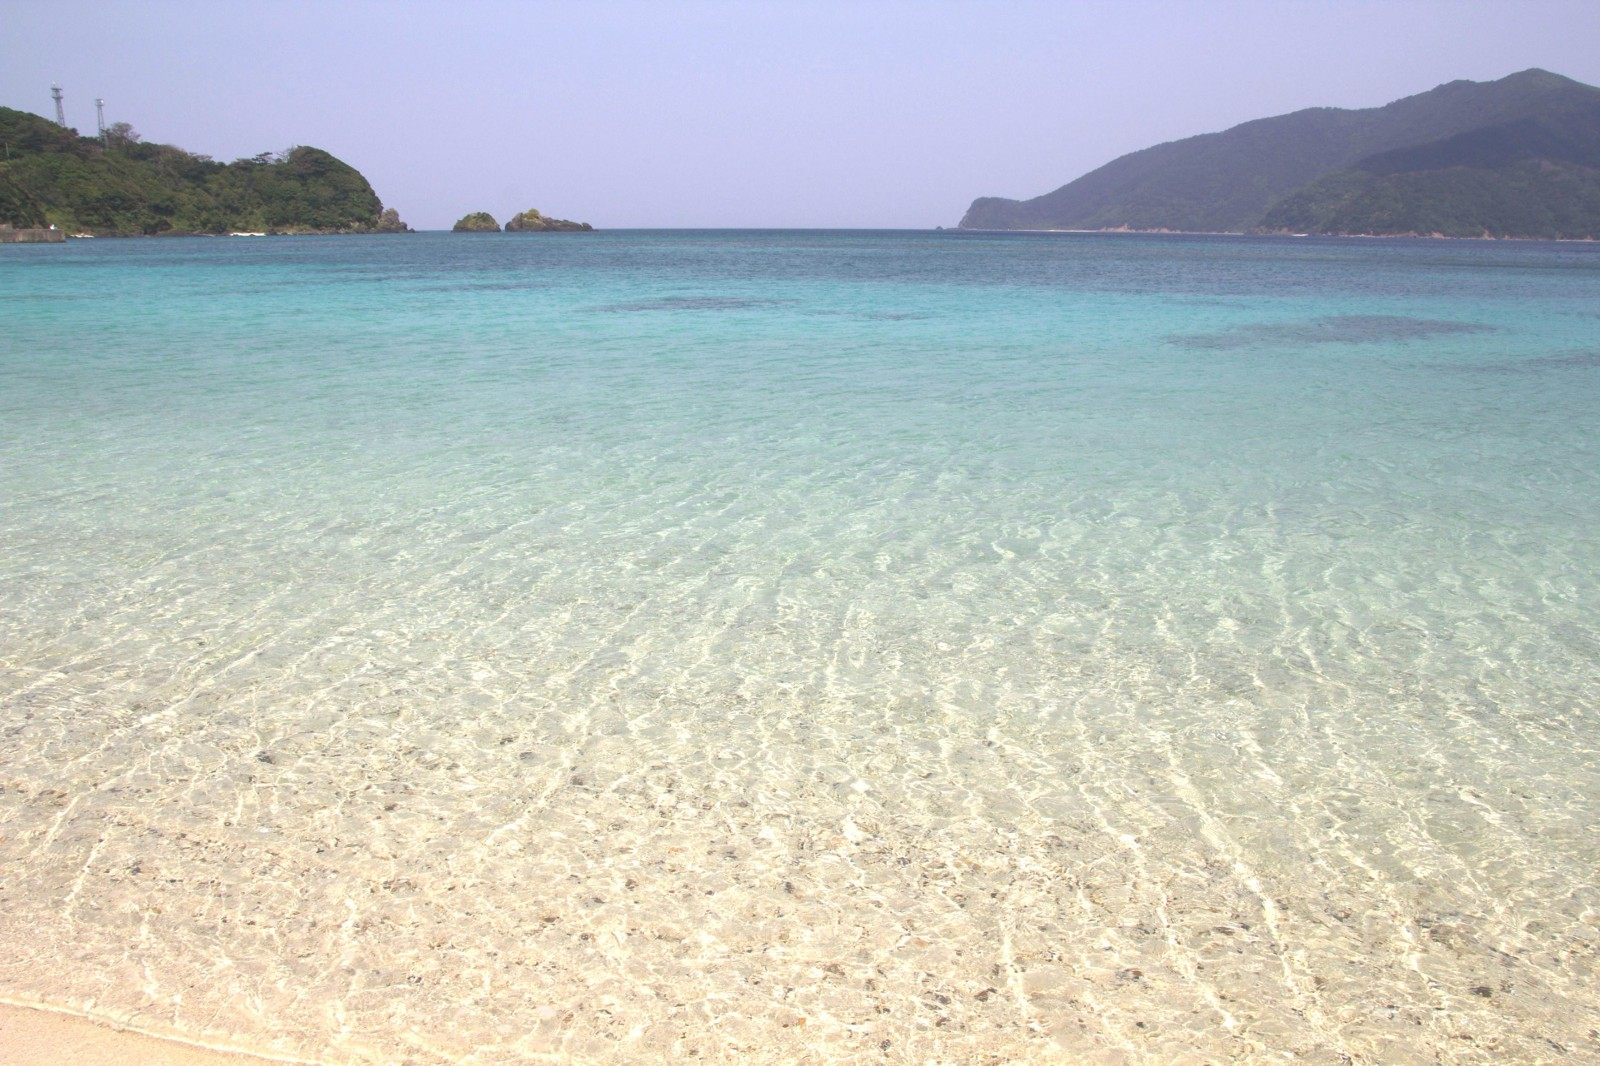 Clear blue water of the beach in Amami Oshima Island